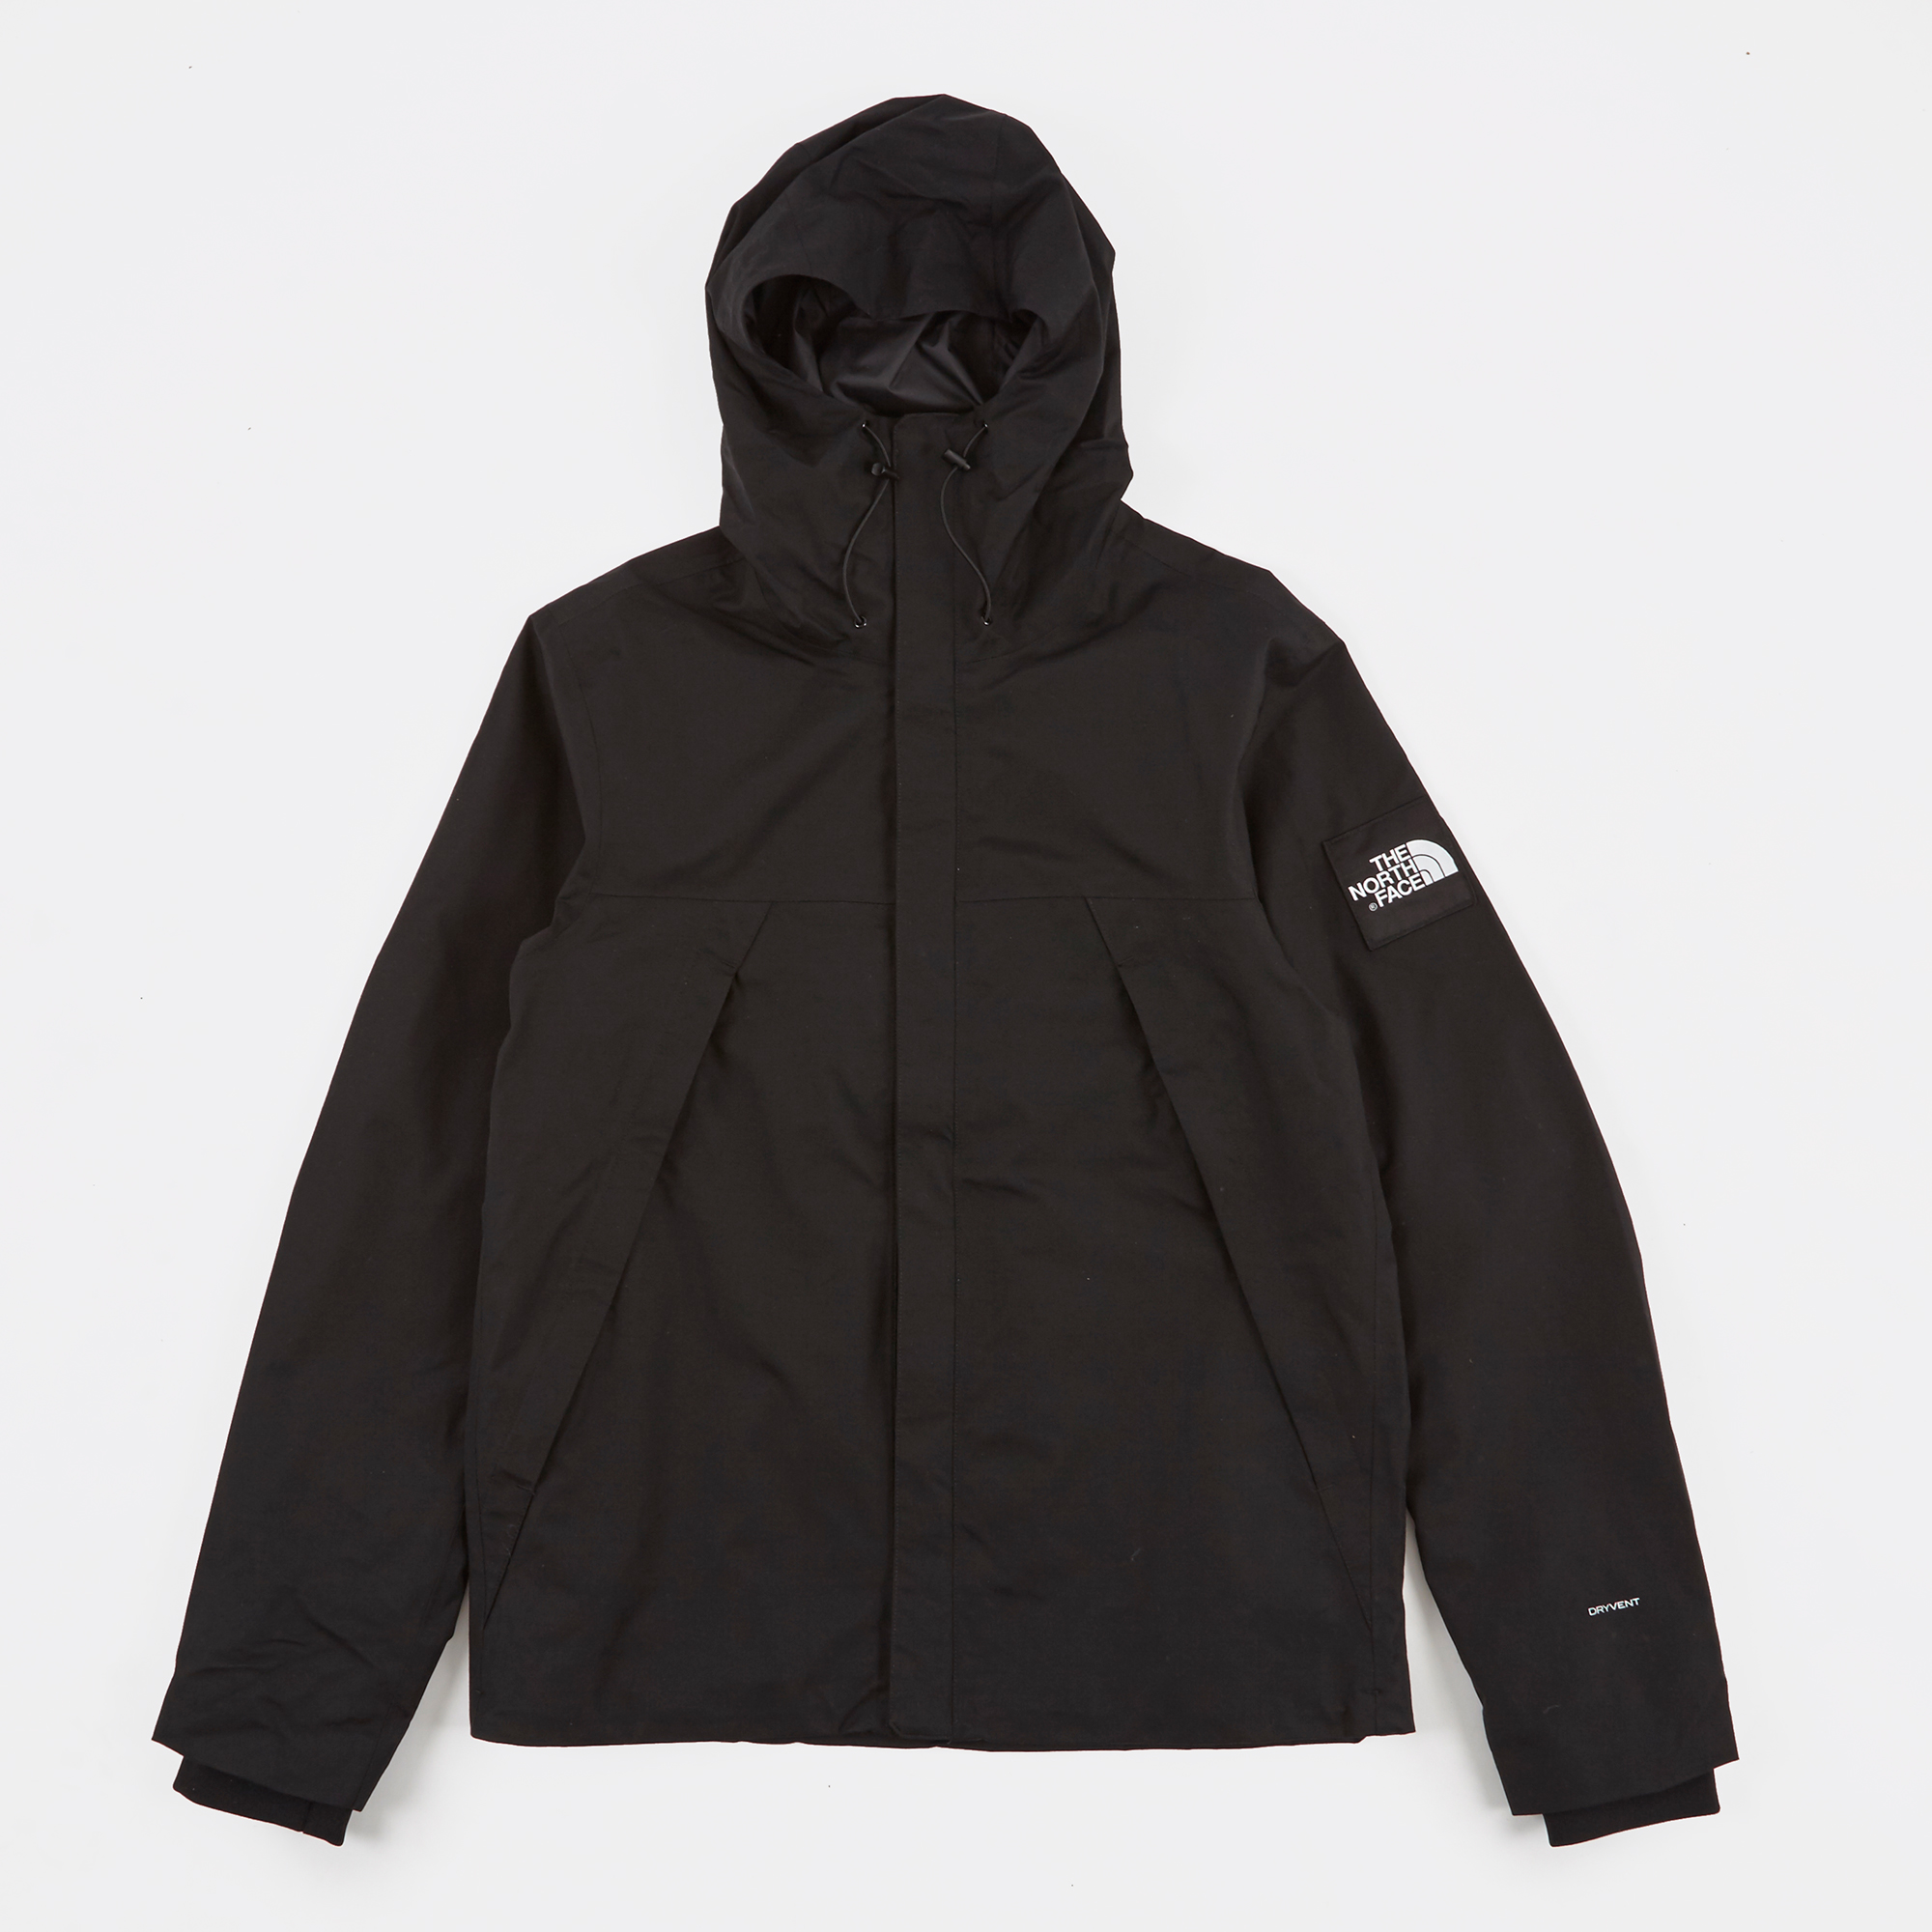 The North Face Black Label 1990 Mountain Jacket - Black Black ca96c33e982c